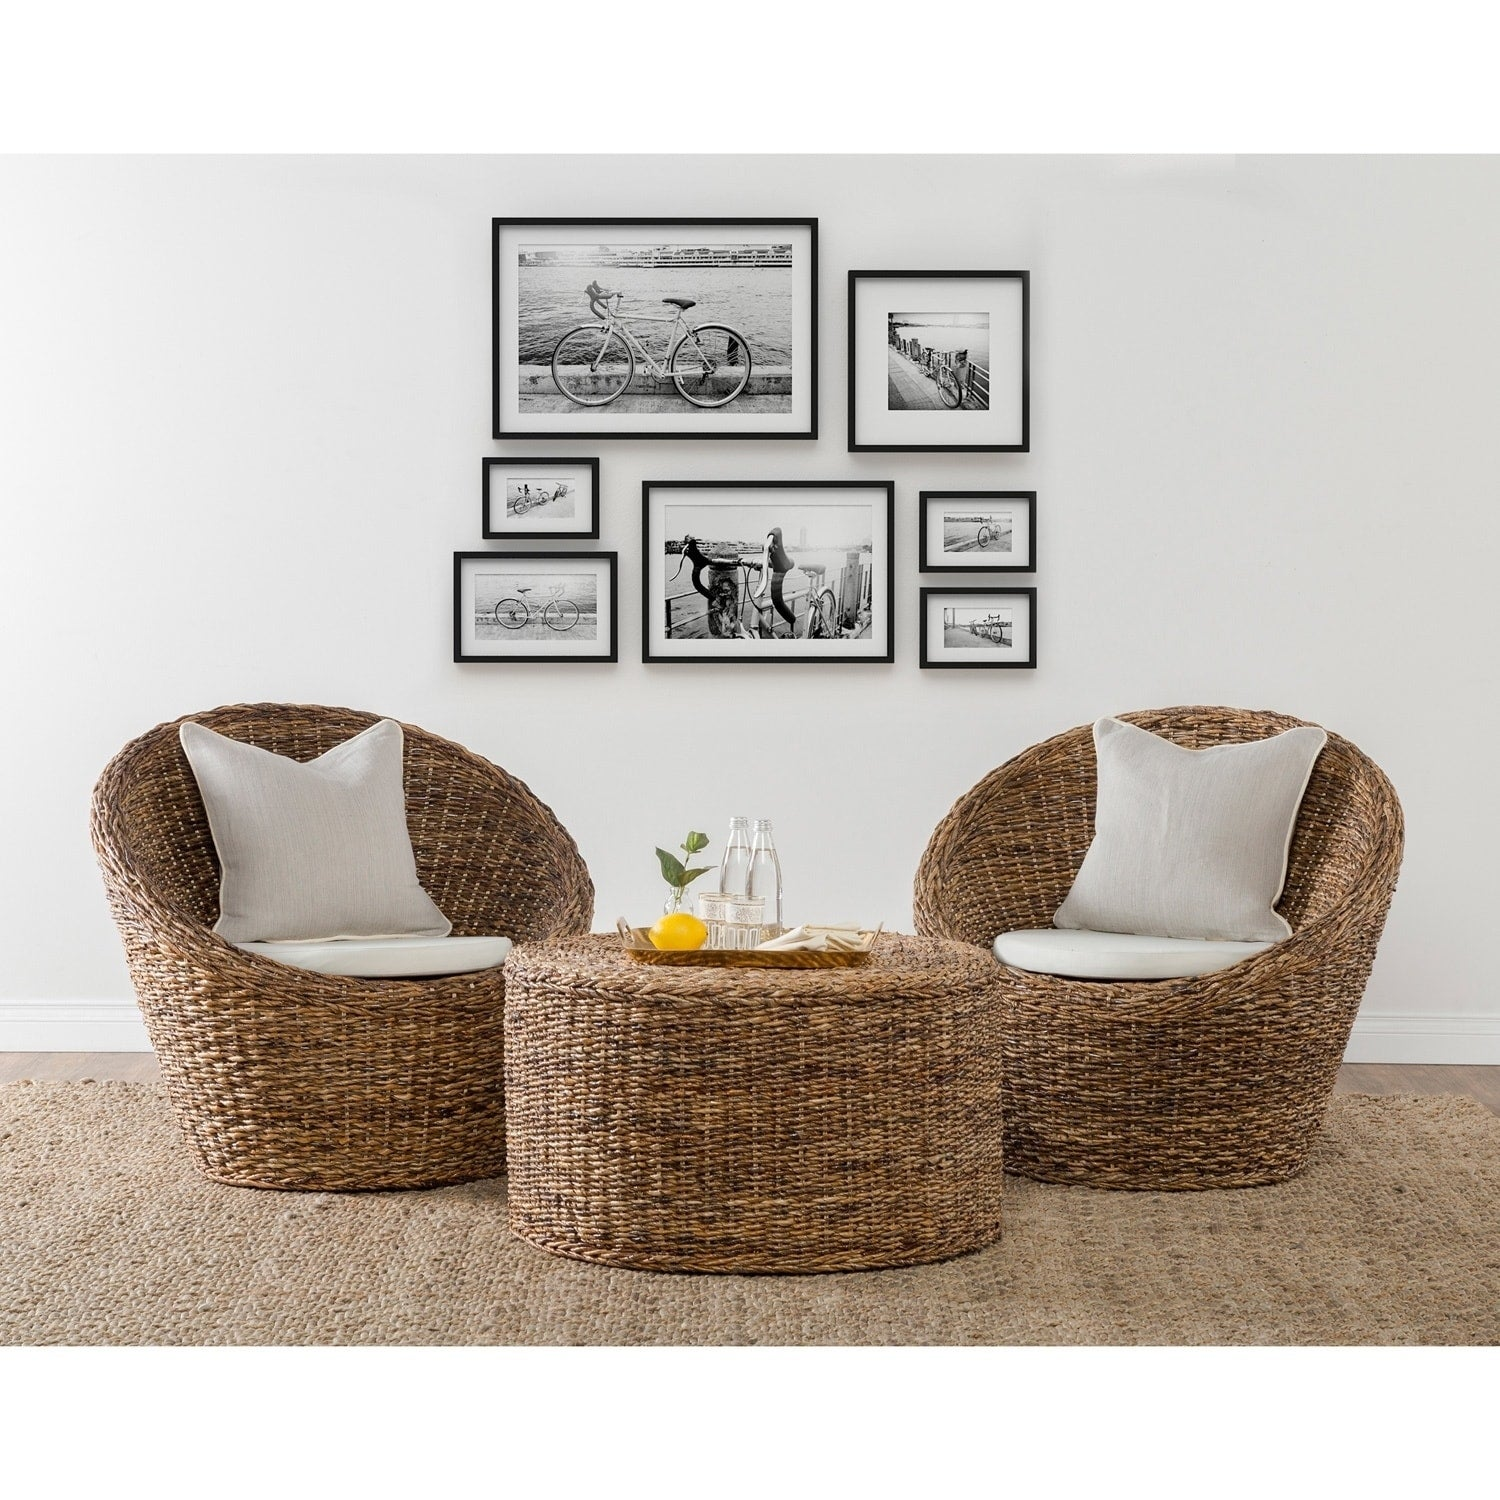 Shop gia hand woven rattan chair by kosas home on sale free shipping today overstock com 11721880